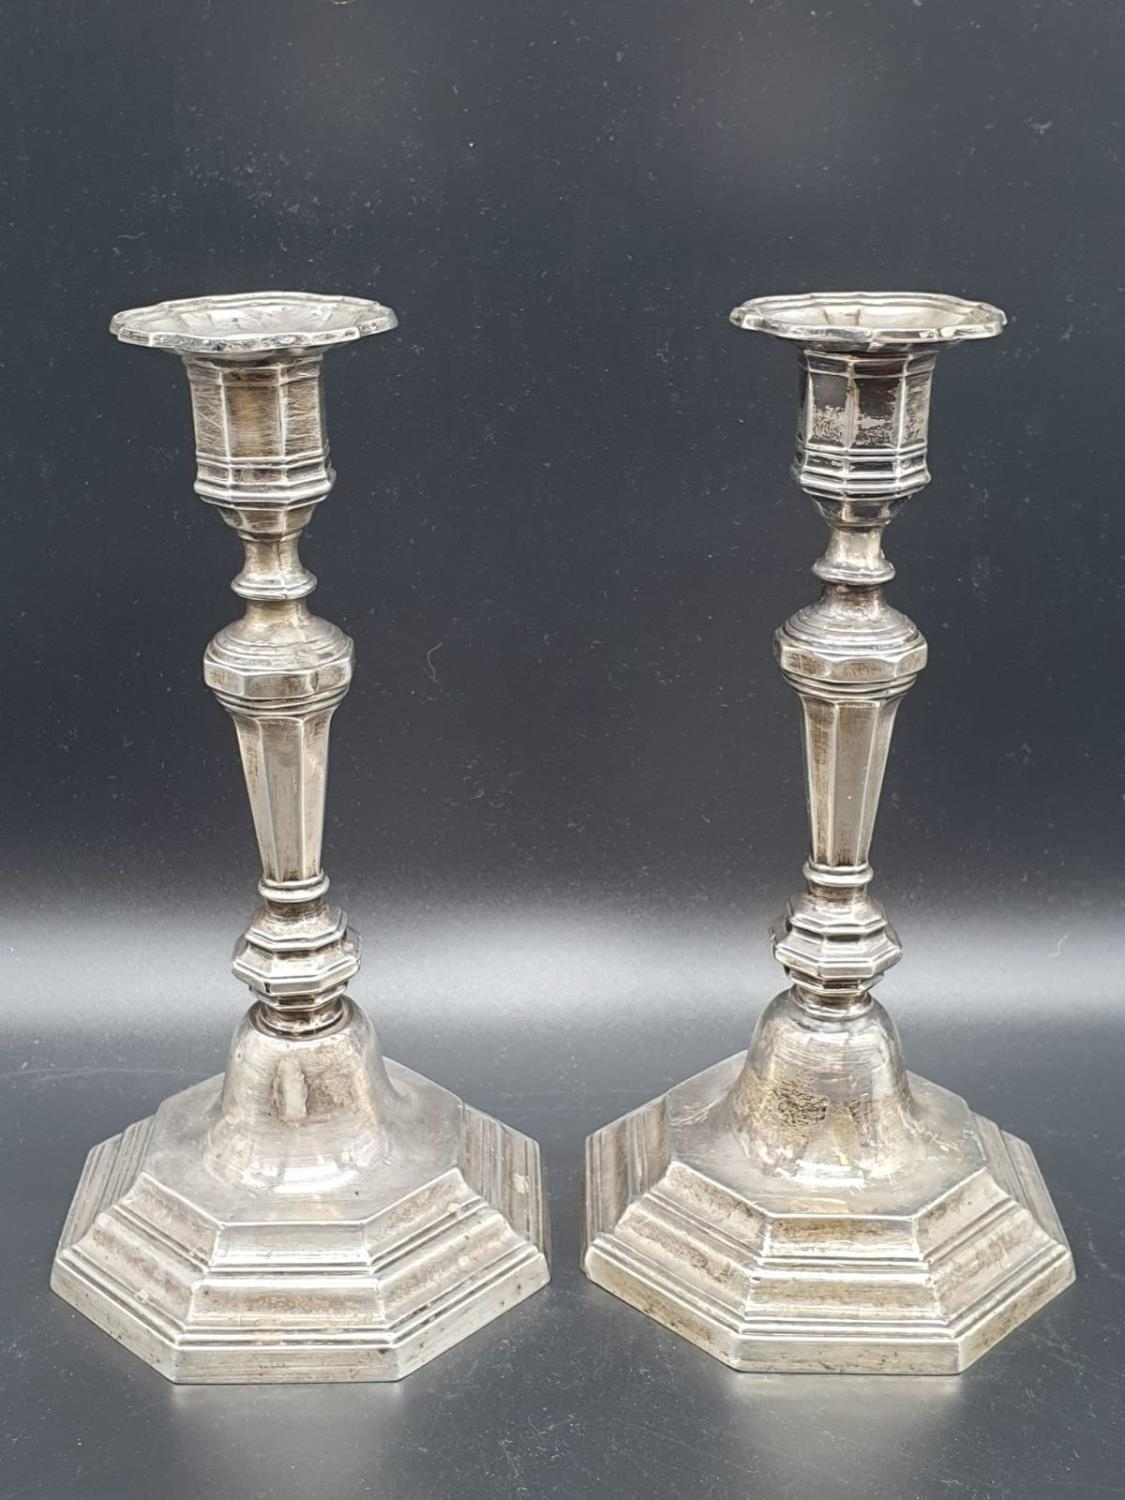 A Pair of Silver Candlesticks in Art Deco Style 23cms tall 1.6kg